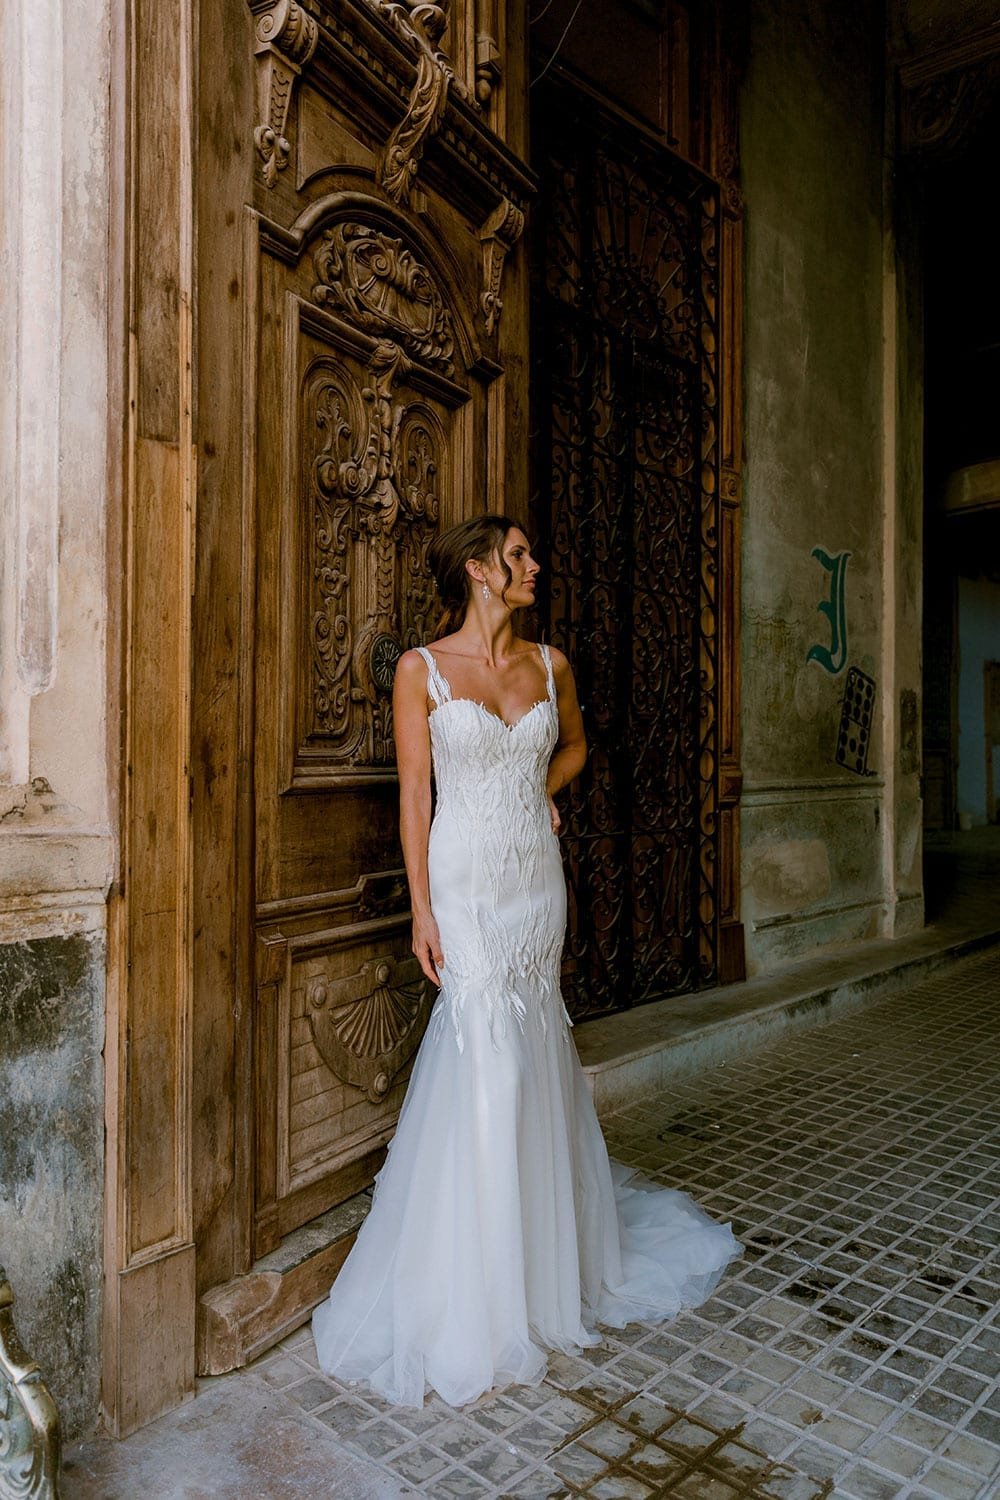 Model wearing Vinka Design Irina Wedding Dress, a n Embroidered Mermaid Lace Wedding Gown in front of a large old open wooden door in Havana